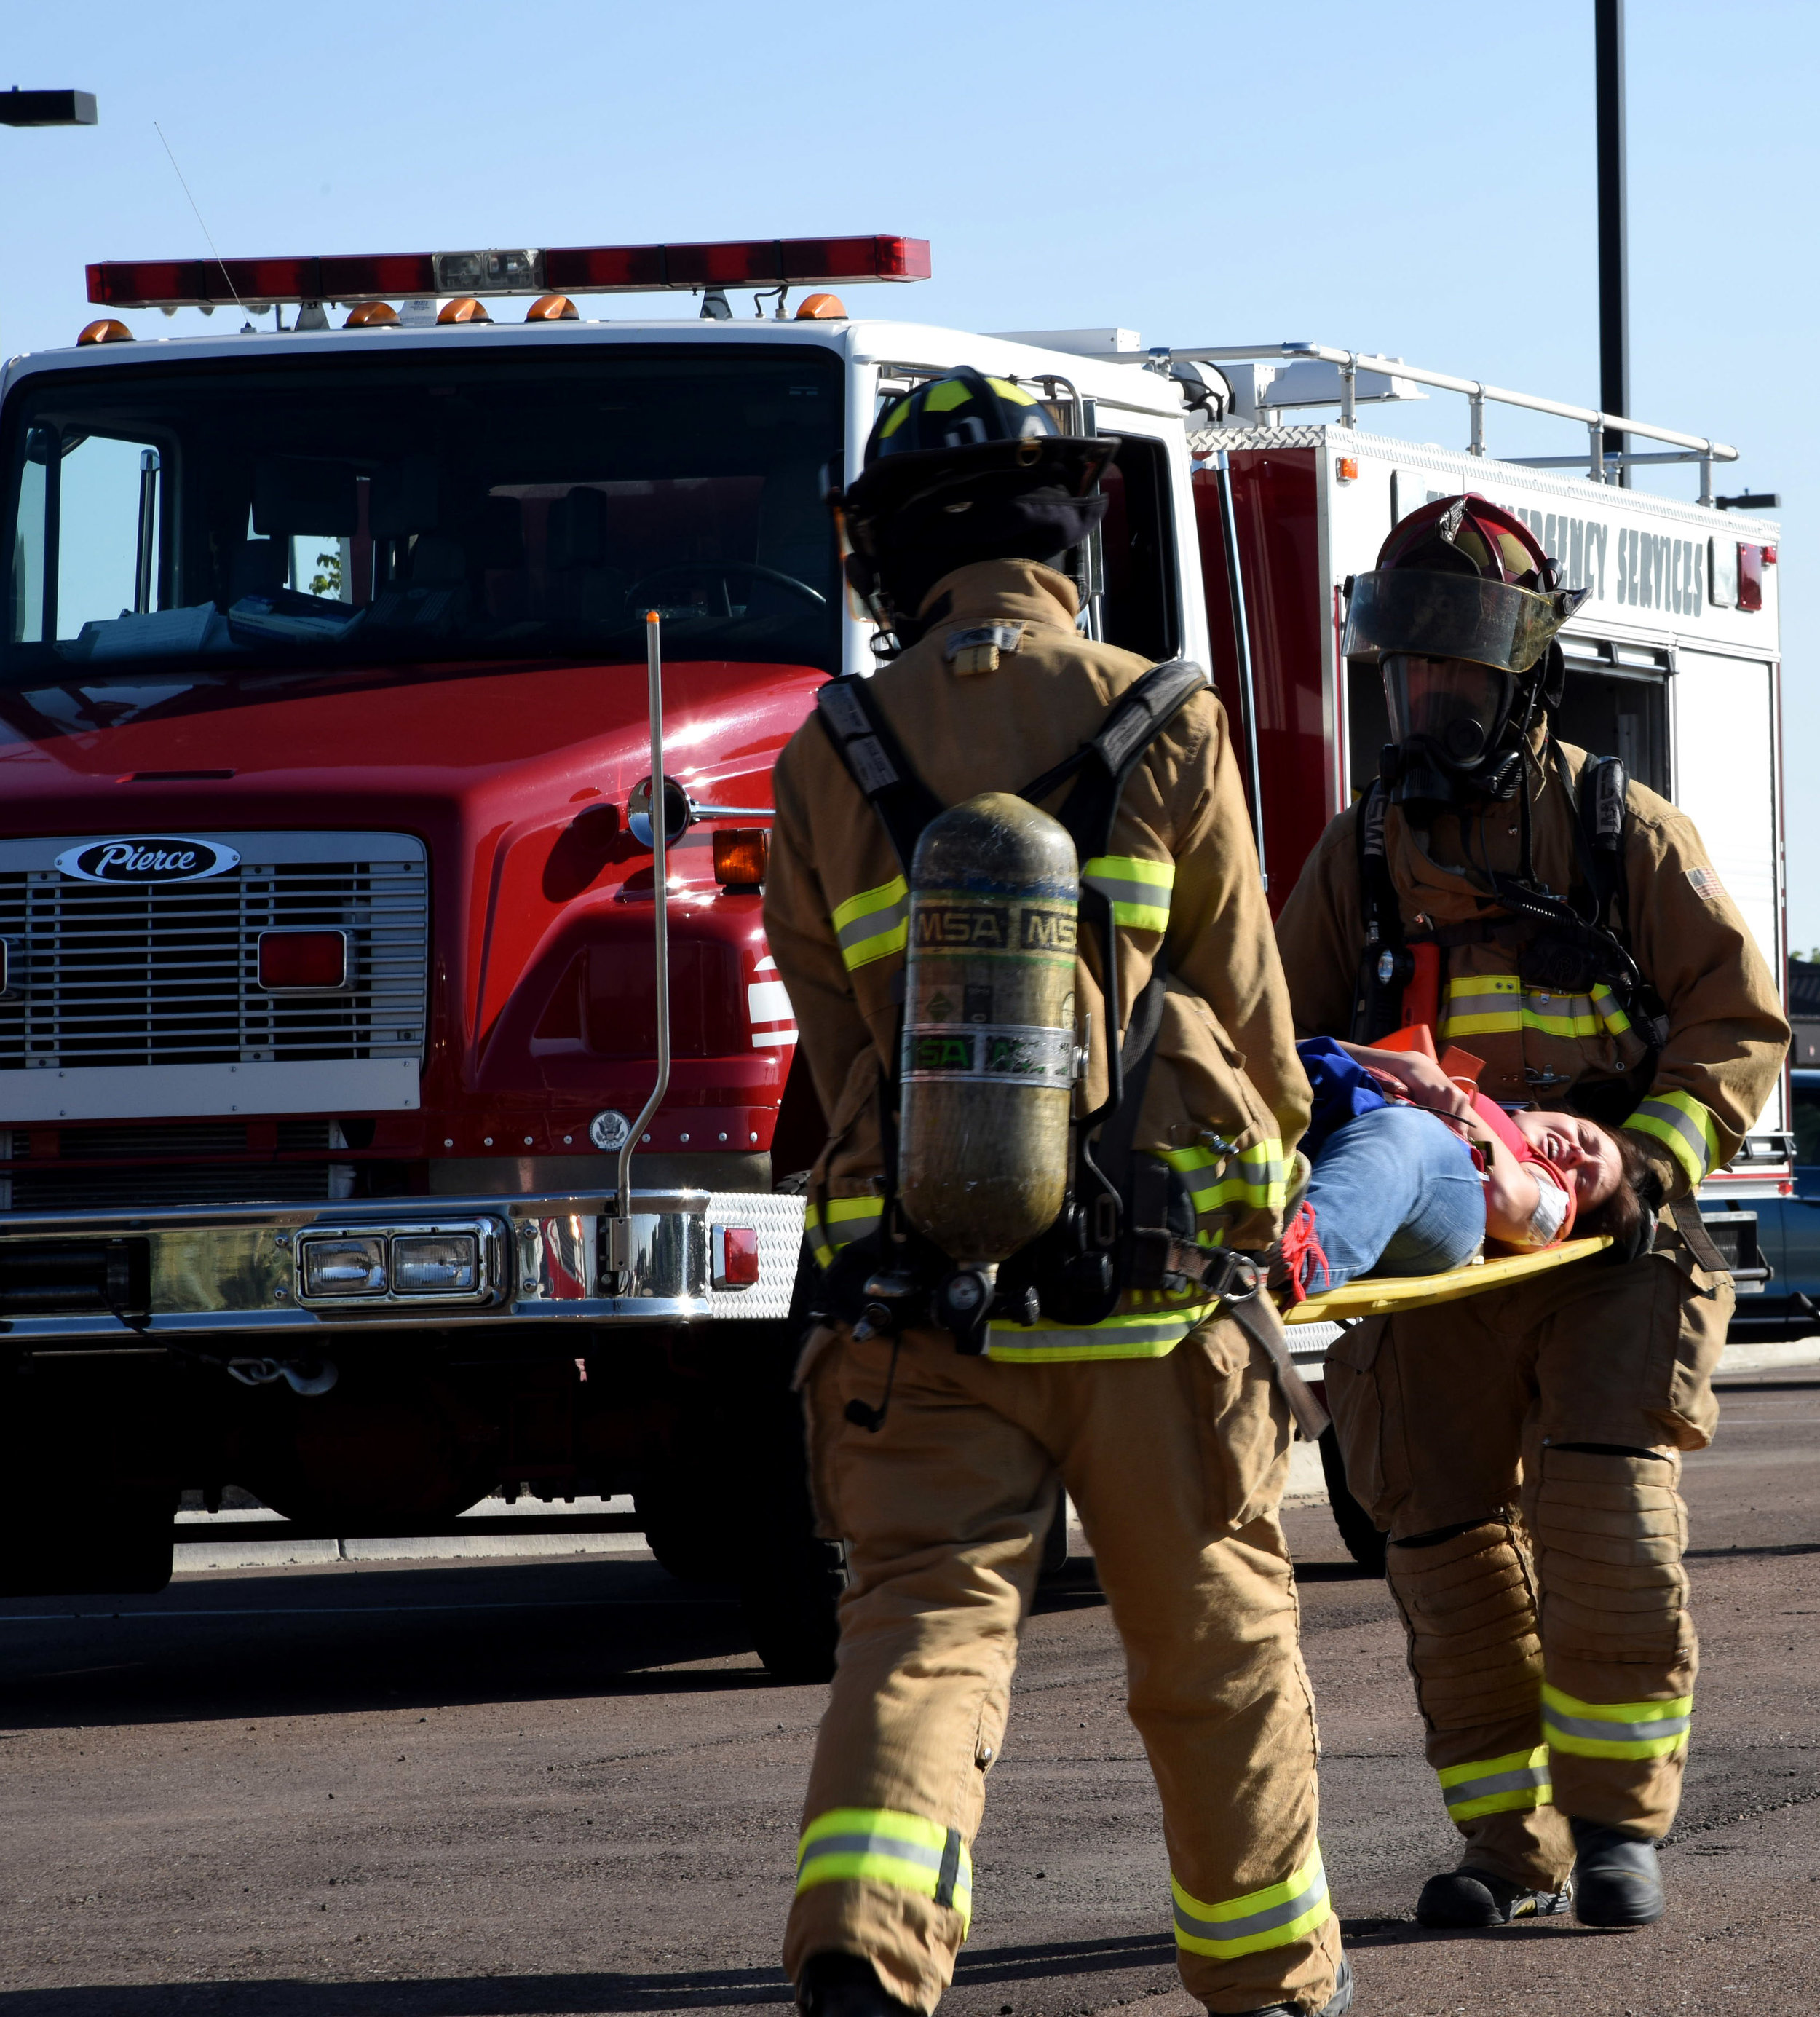 Team_Malmstrom_works_with_Montana_National_guard,_local_emergency_services_during_MARE_150810-F-GF295-037.jpg